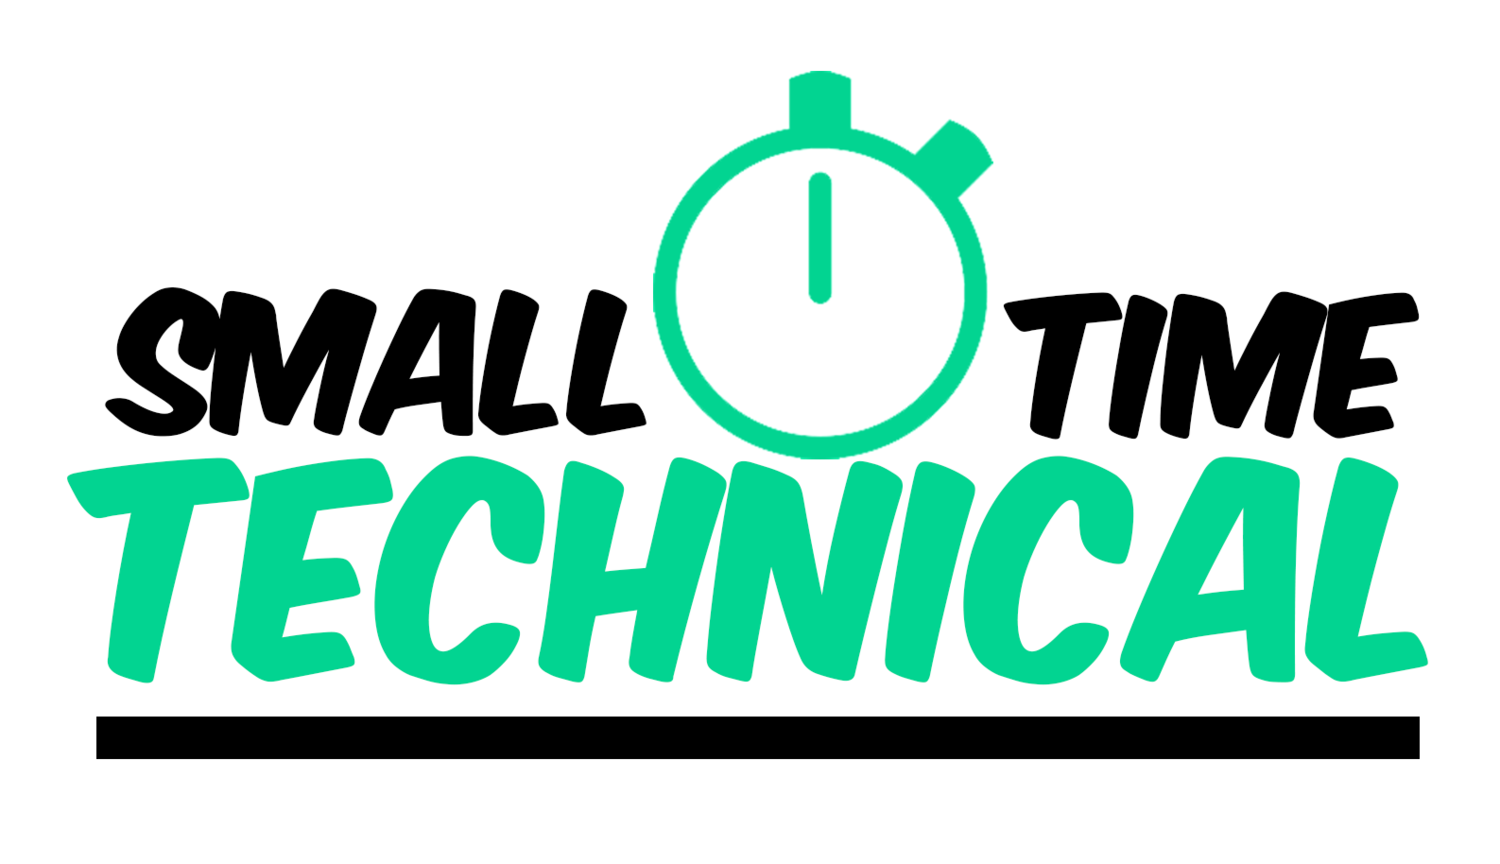 SMALL TIME TECHNICAL